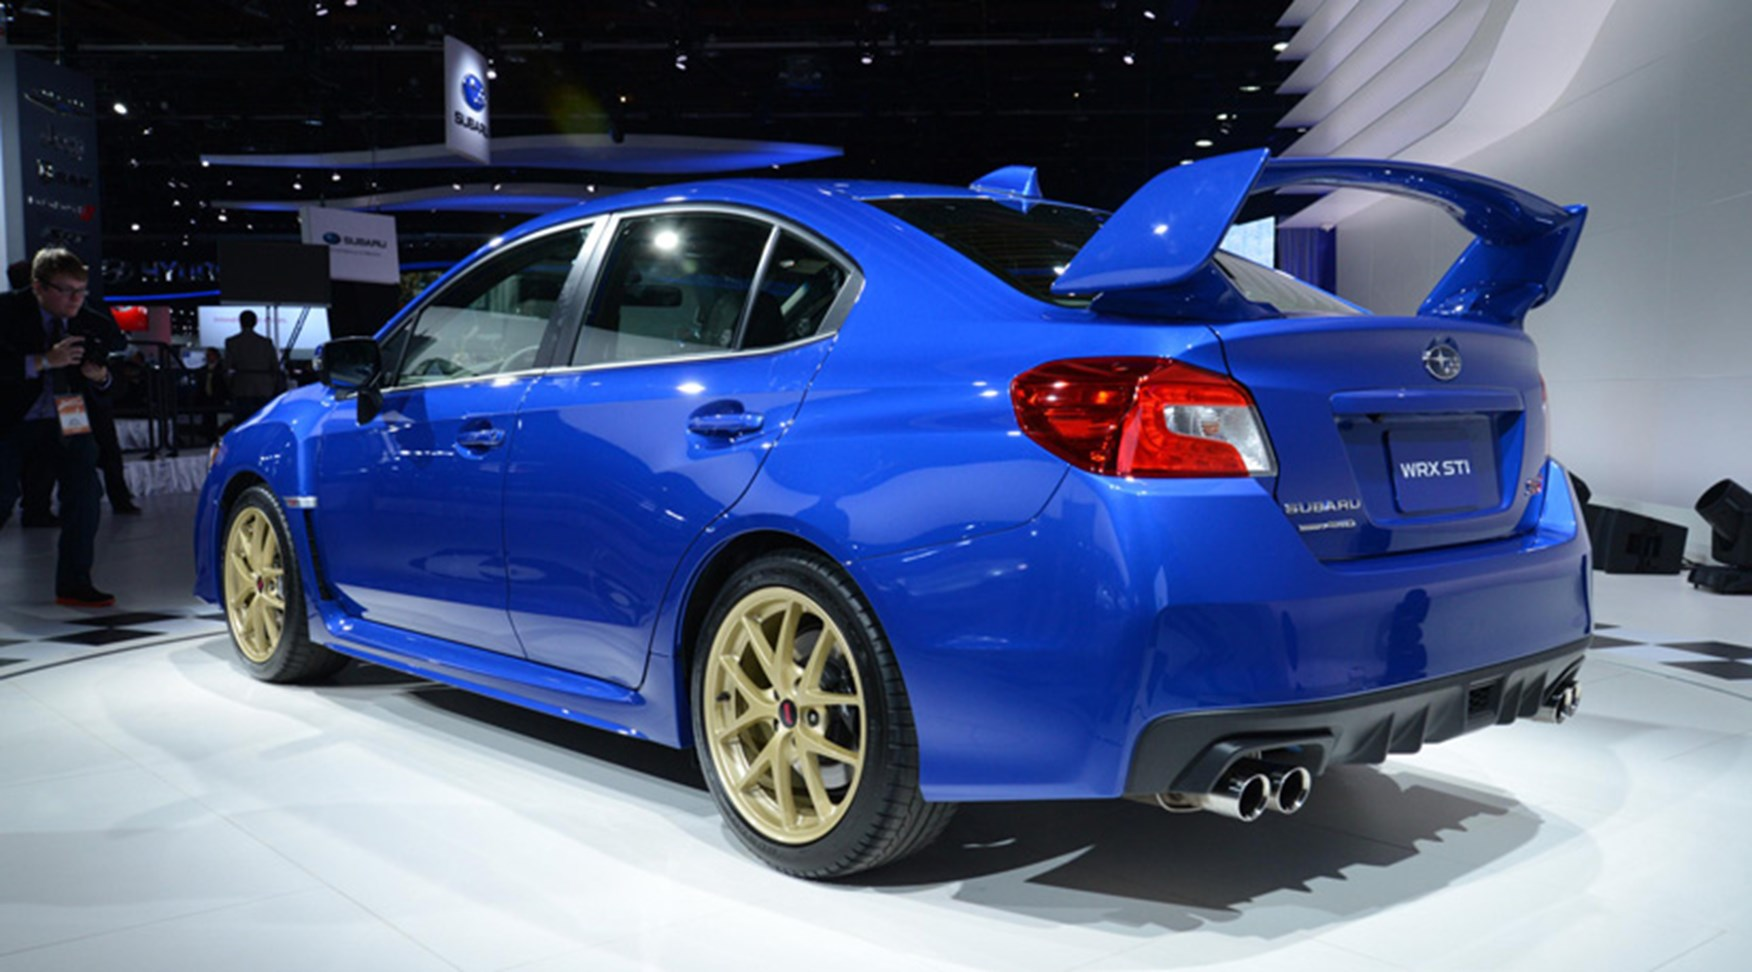 Subaru Wrx Sti 2014 Uk Sales Of New Impreza Confirmed